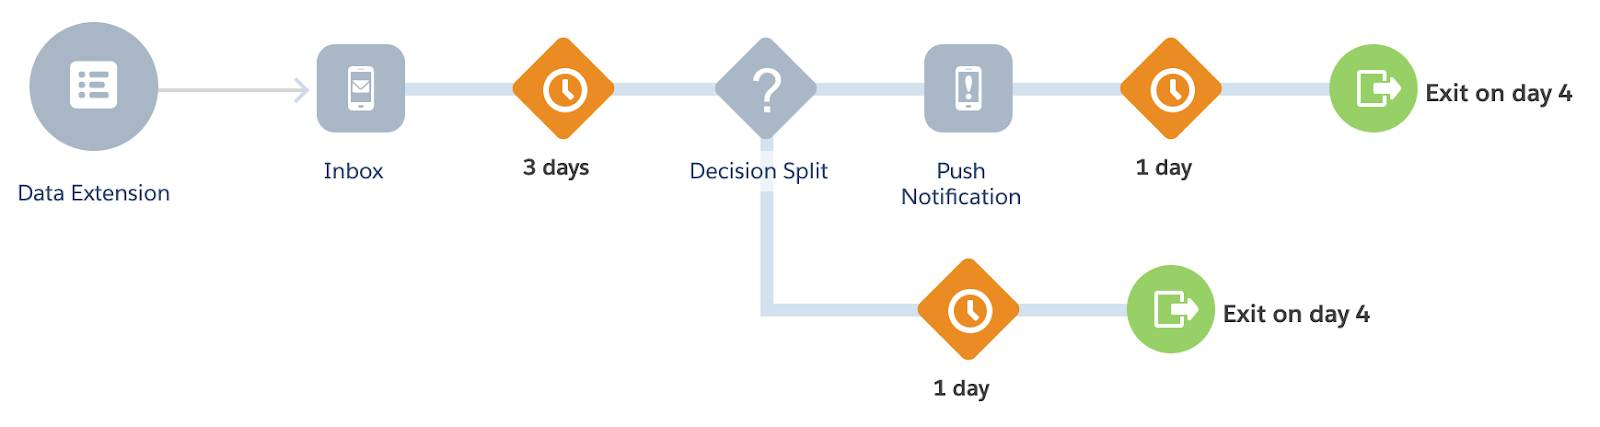 Alt text: A/B Test Journey with a decision split that sends a push notification to customers who haven't redeemed the offer, and exits customers who have.